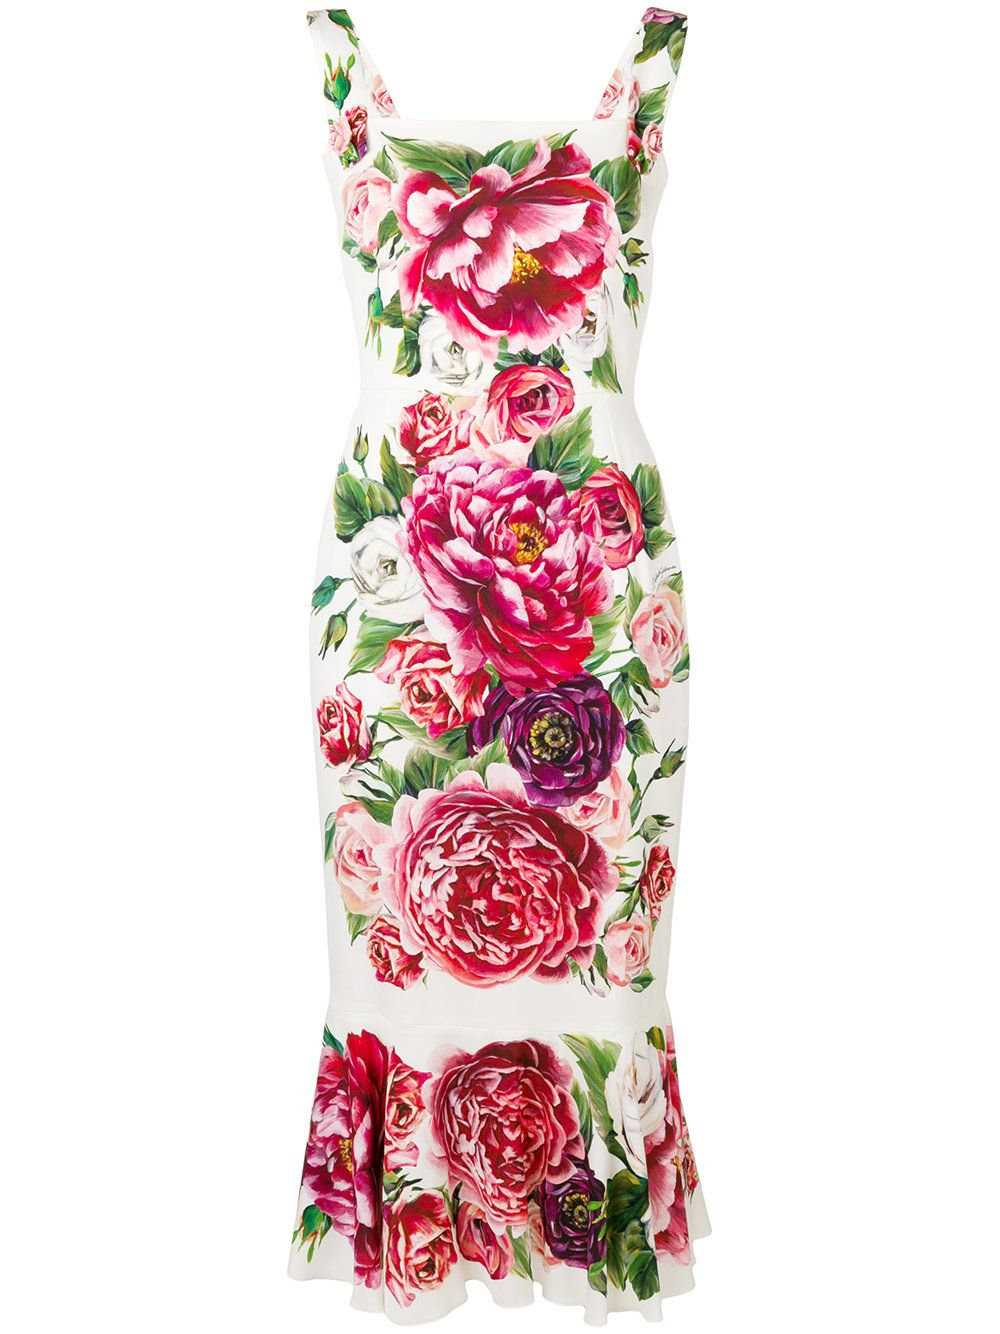 Dolce Amp Gabbana Floral Printed Dress With Images